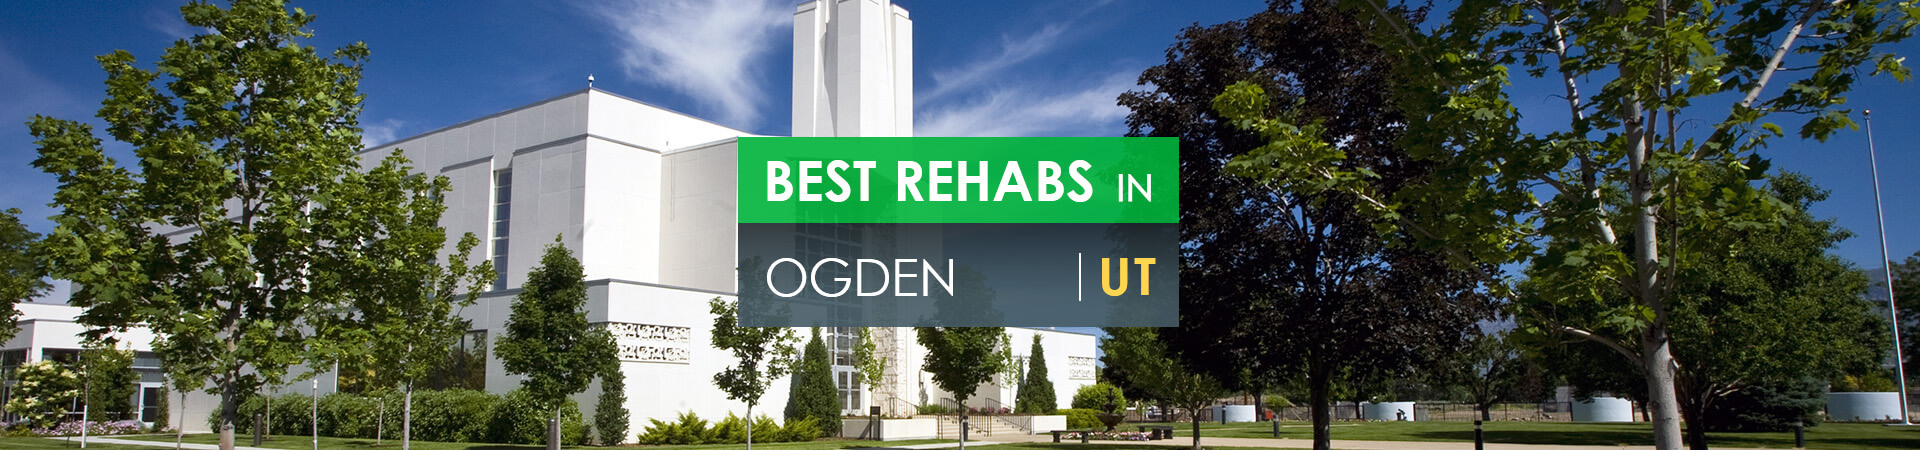 Best rehabs in Ogden, UT